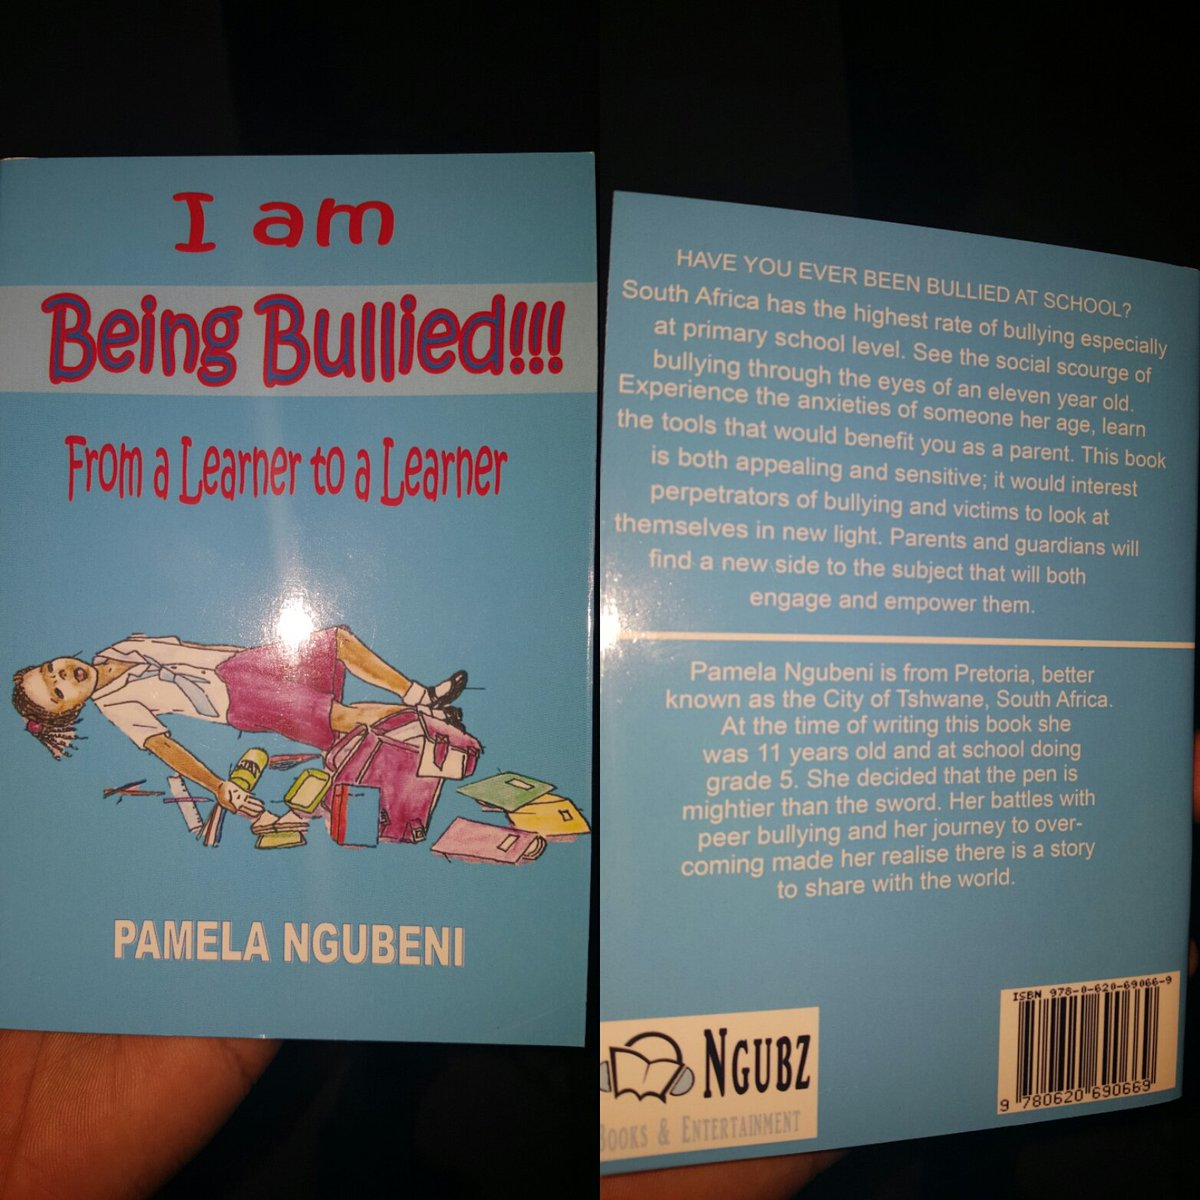 If you think your child is being bullied, here&#39;s a book that&#39;ll help them confess. DM for info #Bullying <br>http://pic.twitter.com/CHZBFFwQos